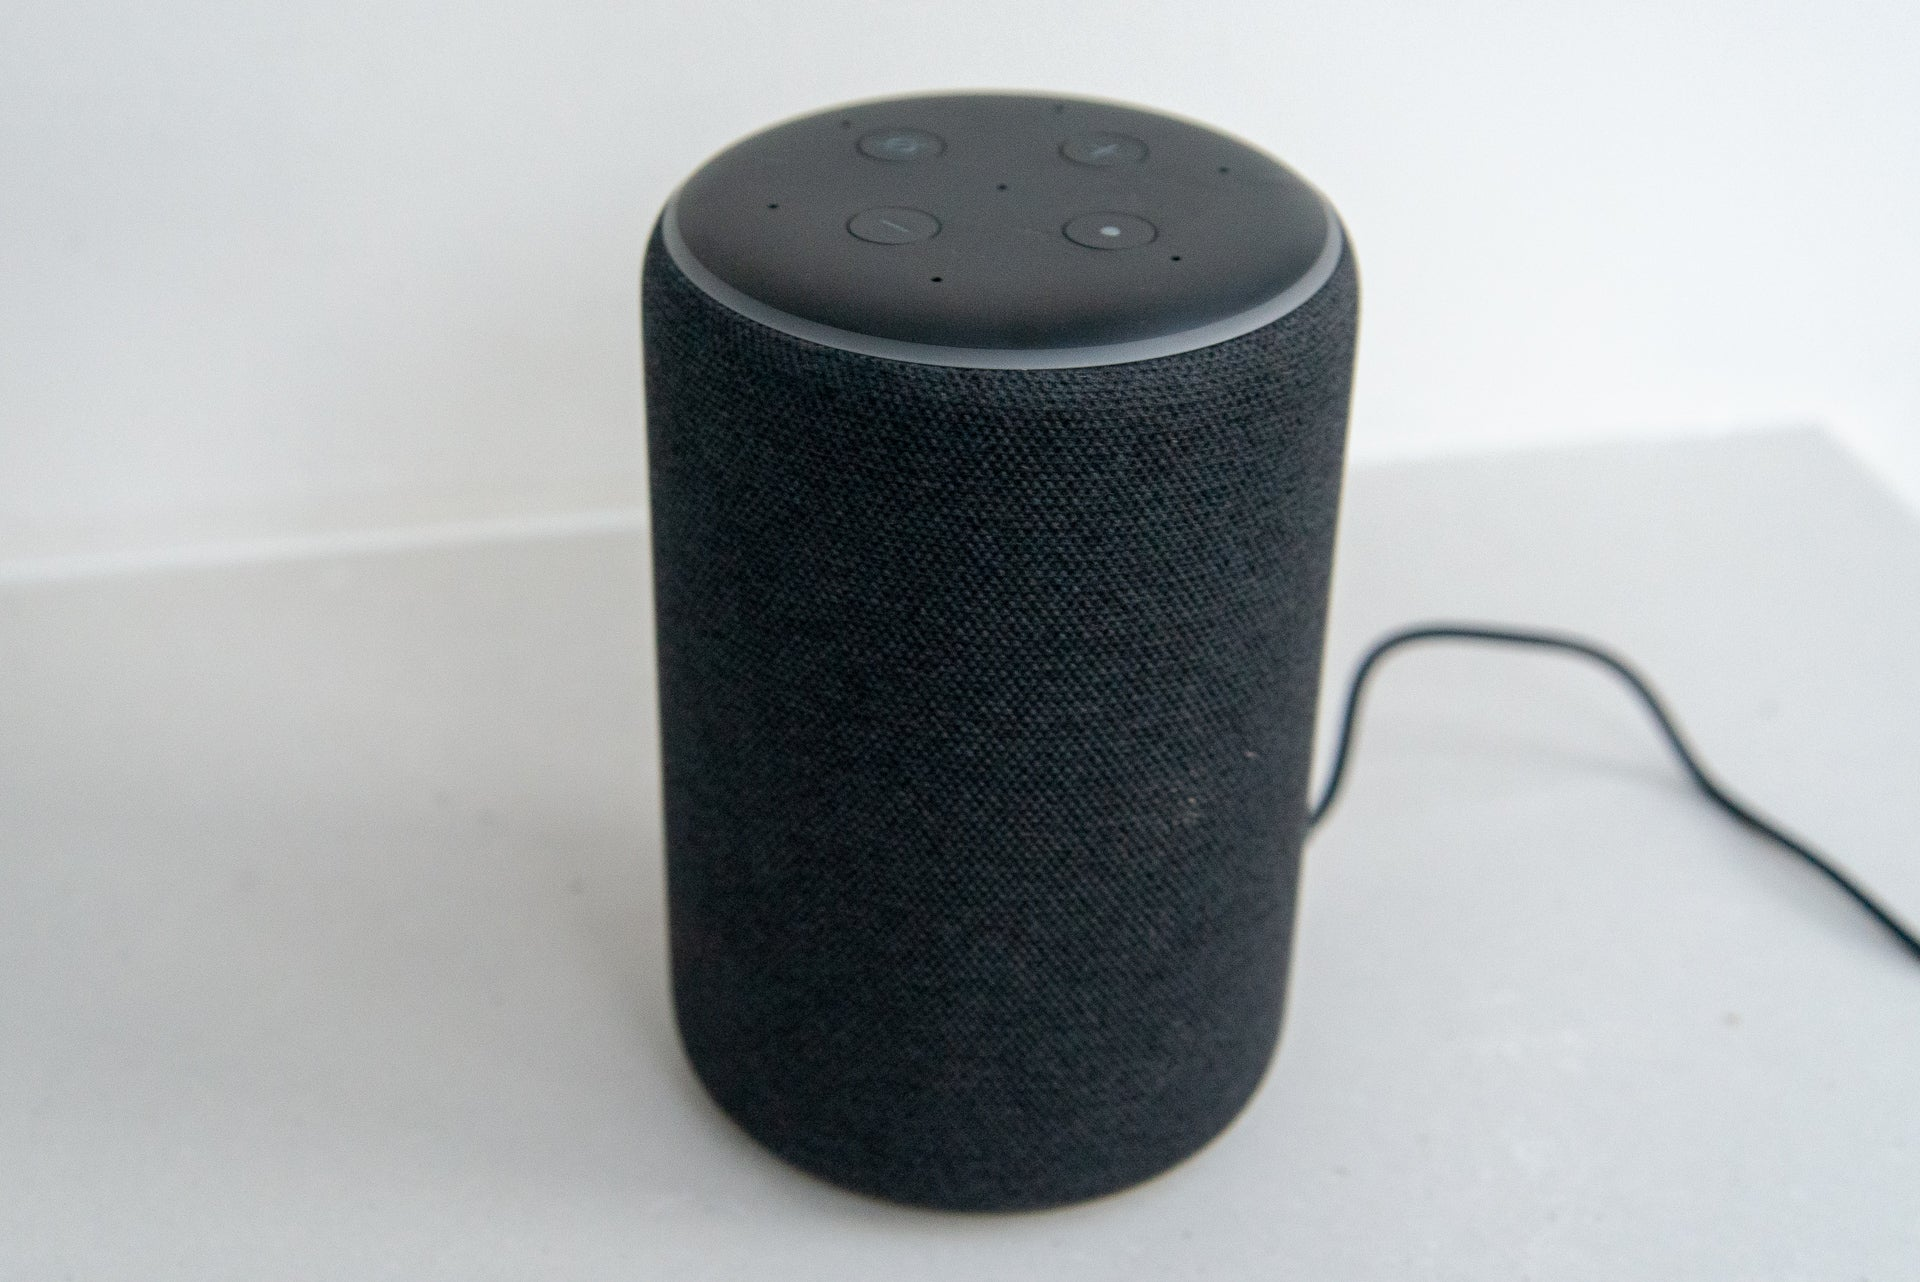 Amazon Echo guide –Tips and tricks to get more out of your smart speaker | Trusted Reviews